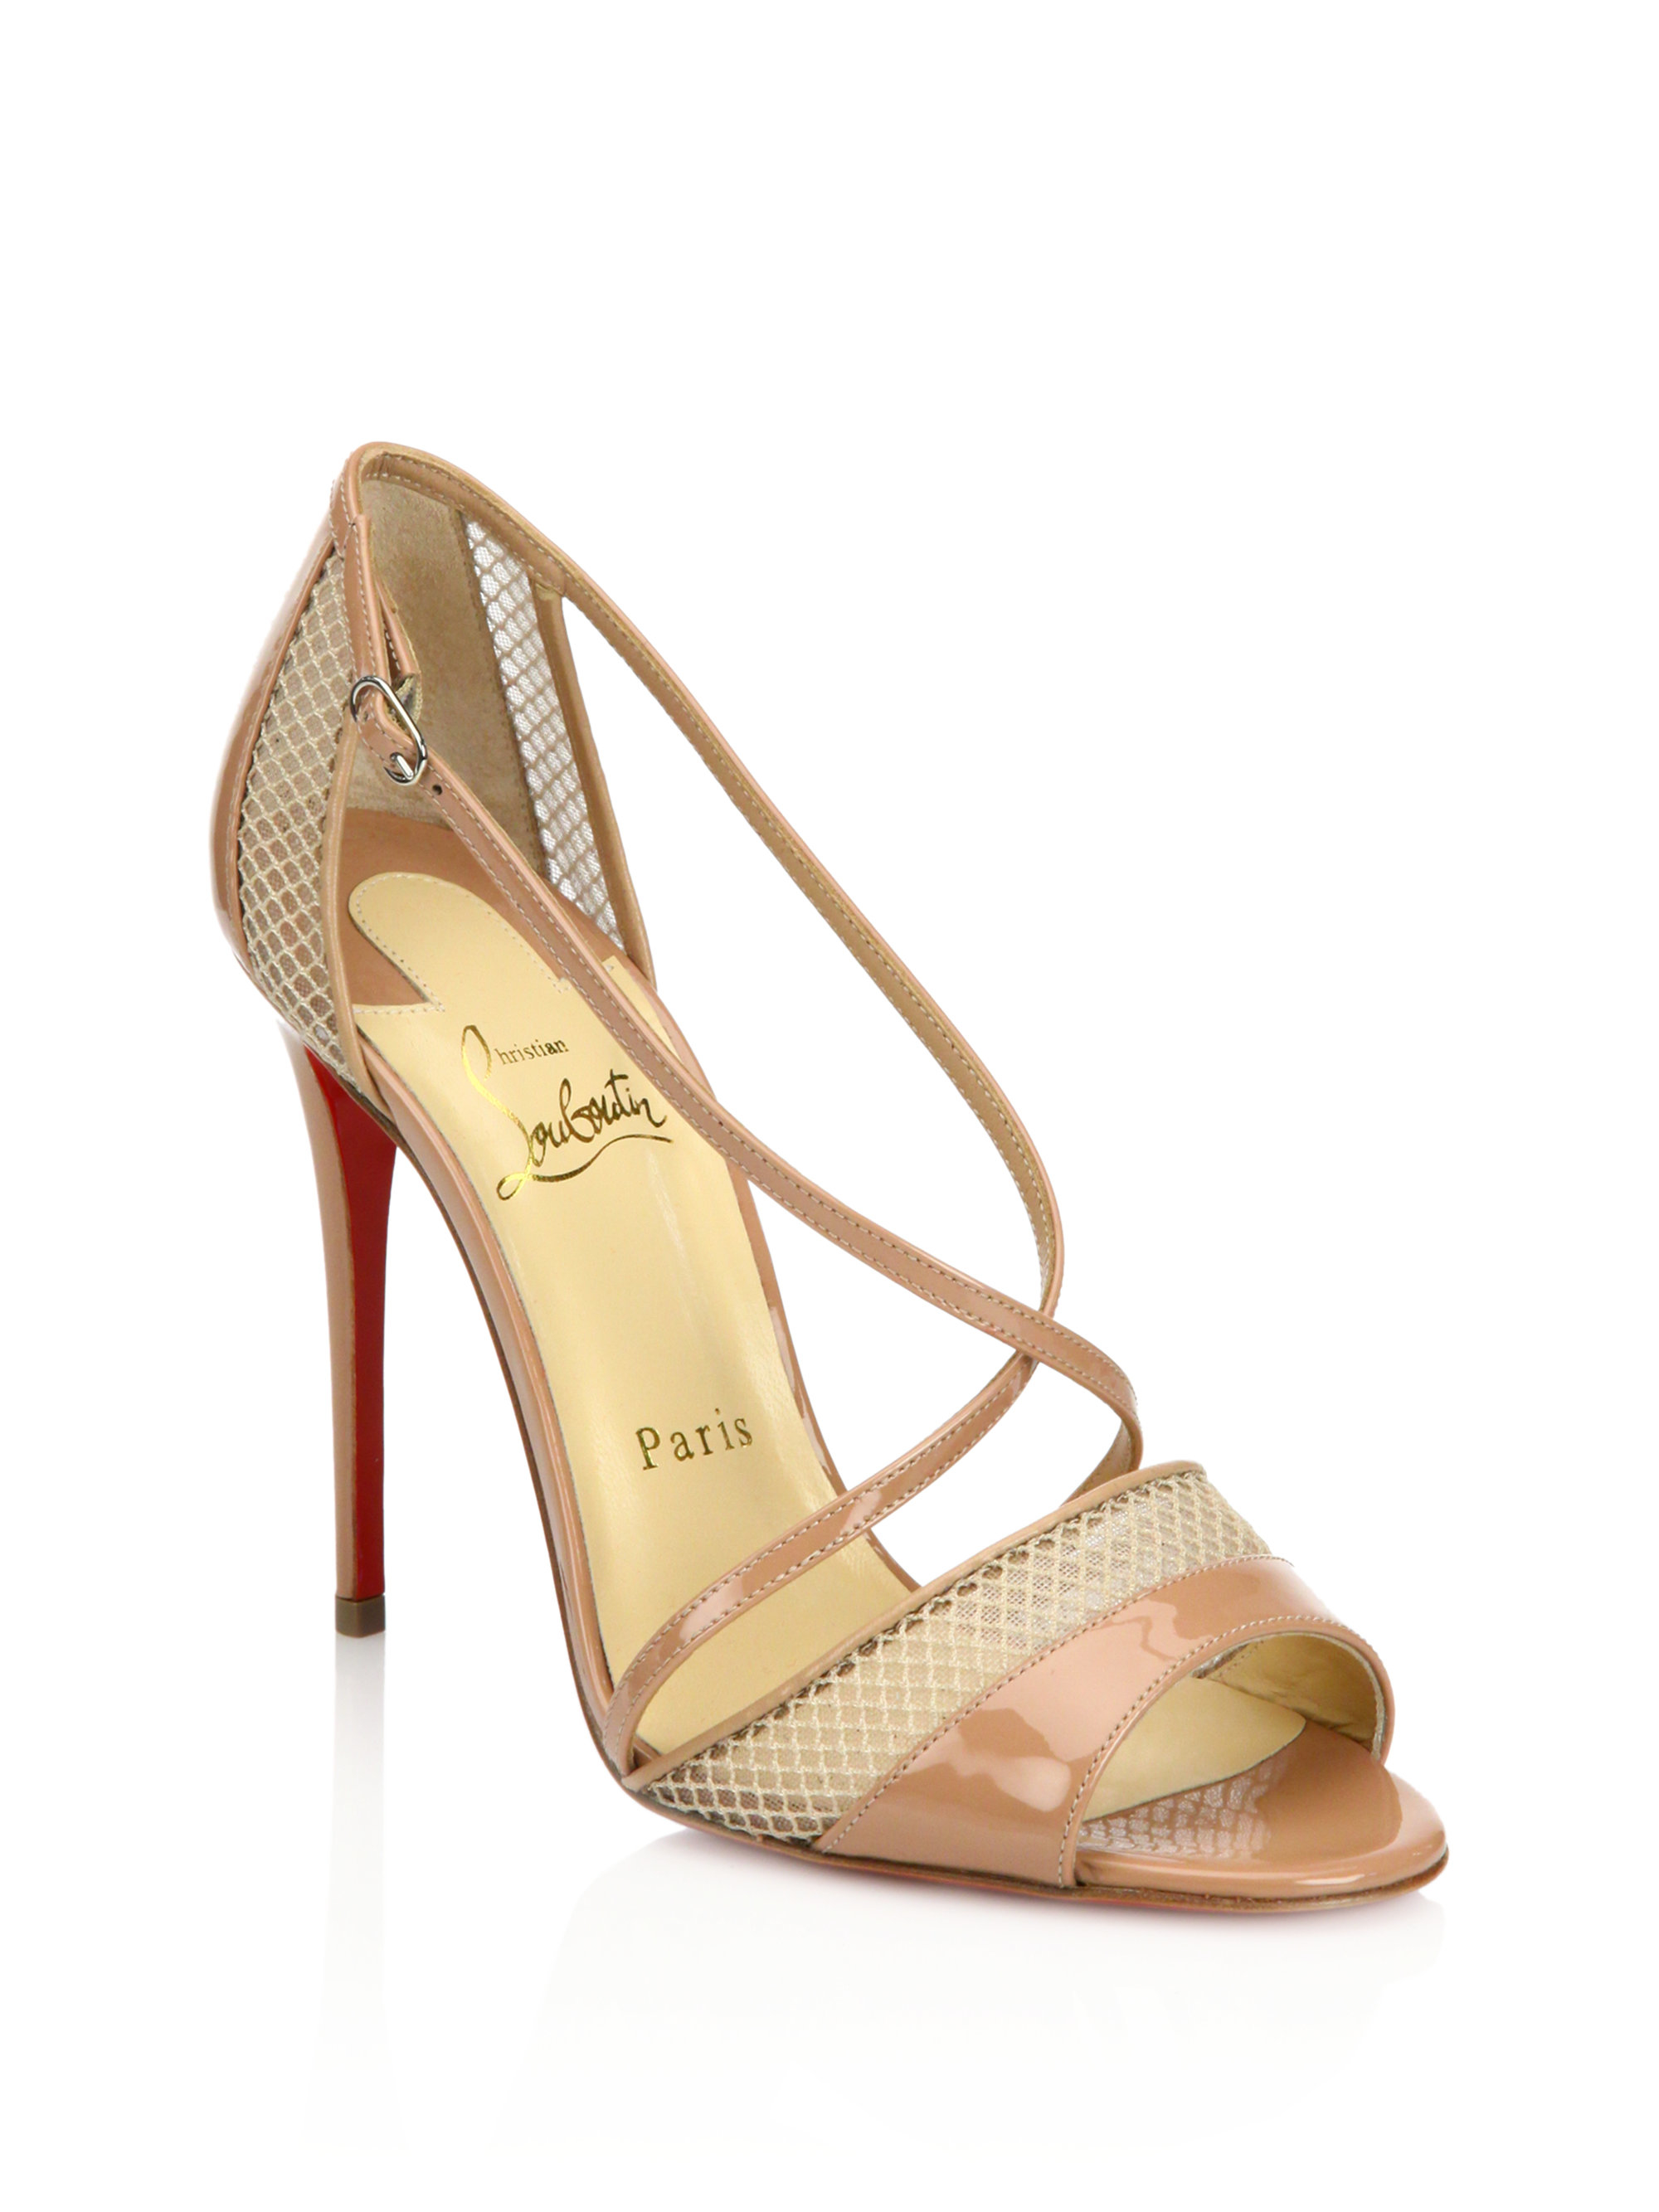 shoes replica usa - Christian louboutin Silkova Patent Leather & Mesh Sandals in Black ...